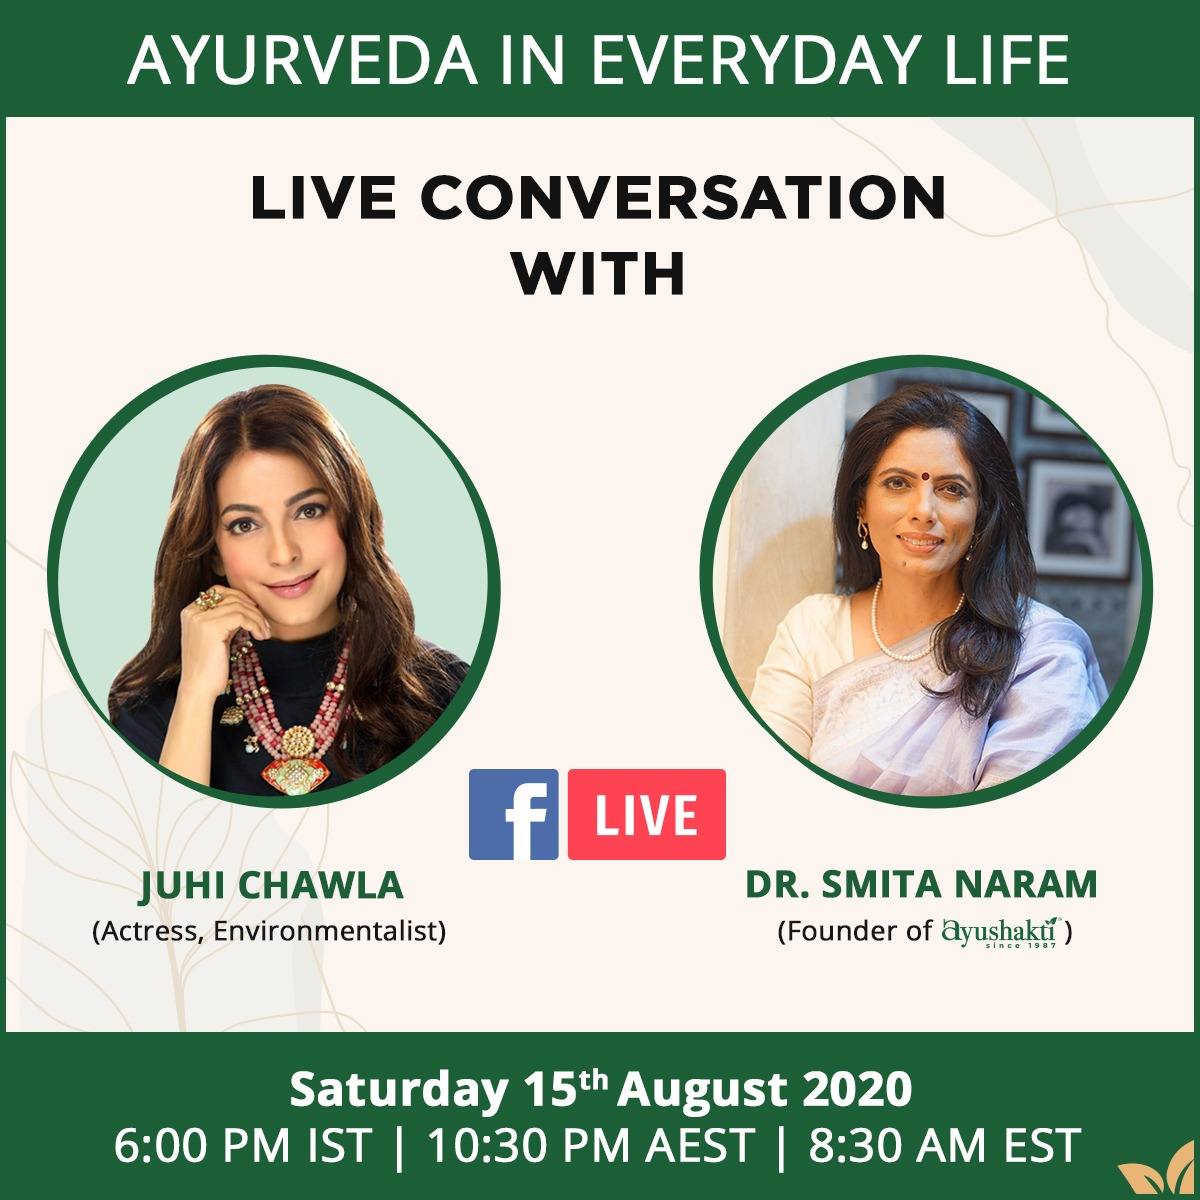 Embrace the goodness & simplicity of Ayurveda! Be it beauty, mental wellness, home & living, Ayurveda has an answer to everything. On 15th August, join me in a conversation with Dr. @smitanaram1 as she shares with us natural & effective home remedies, straight out of your kitchen https://t.co/1IWM0bRjnc